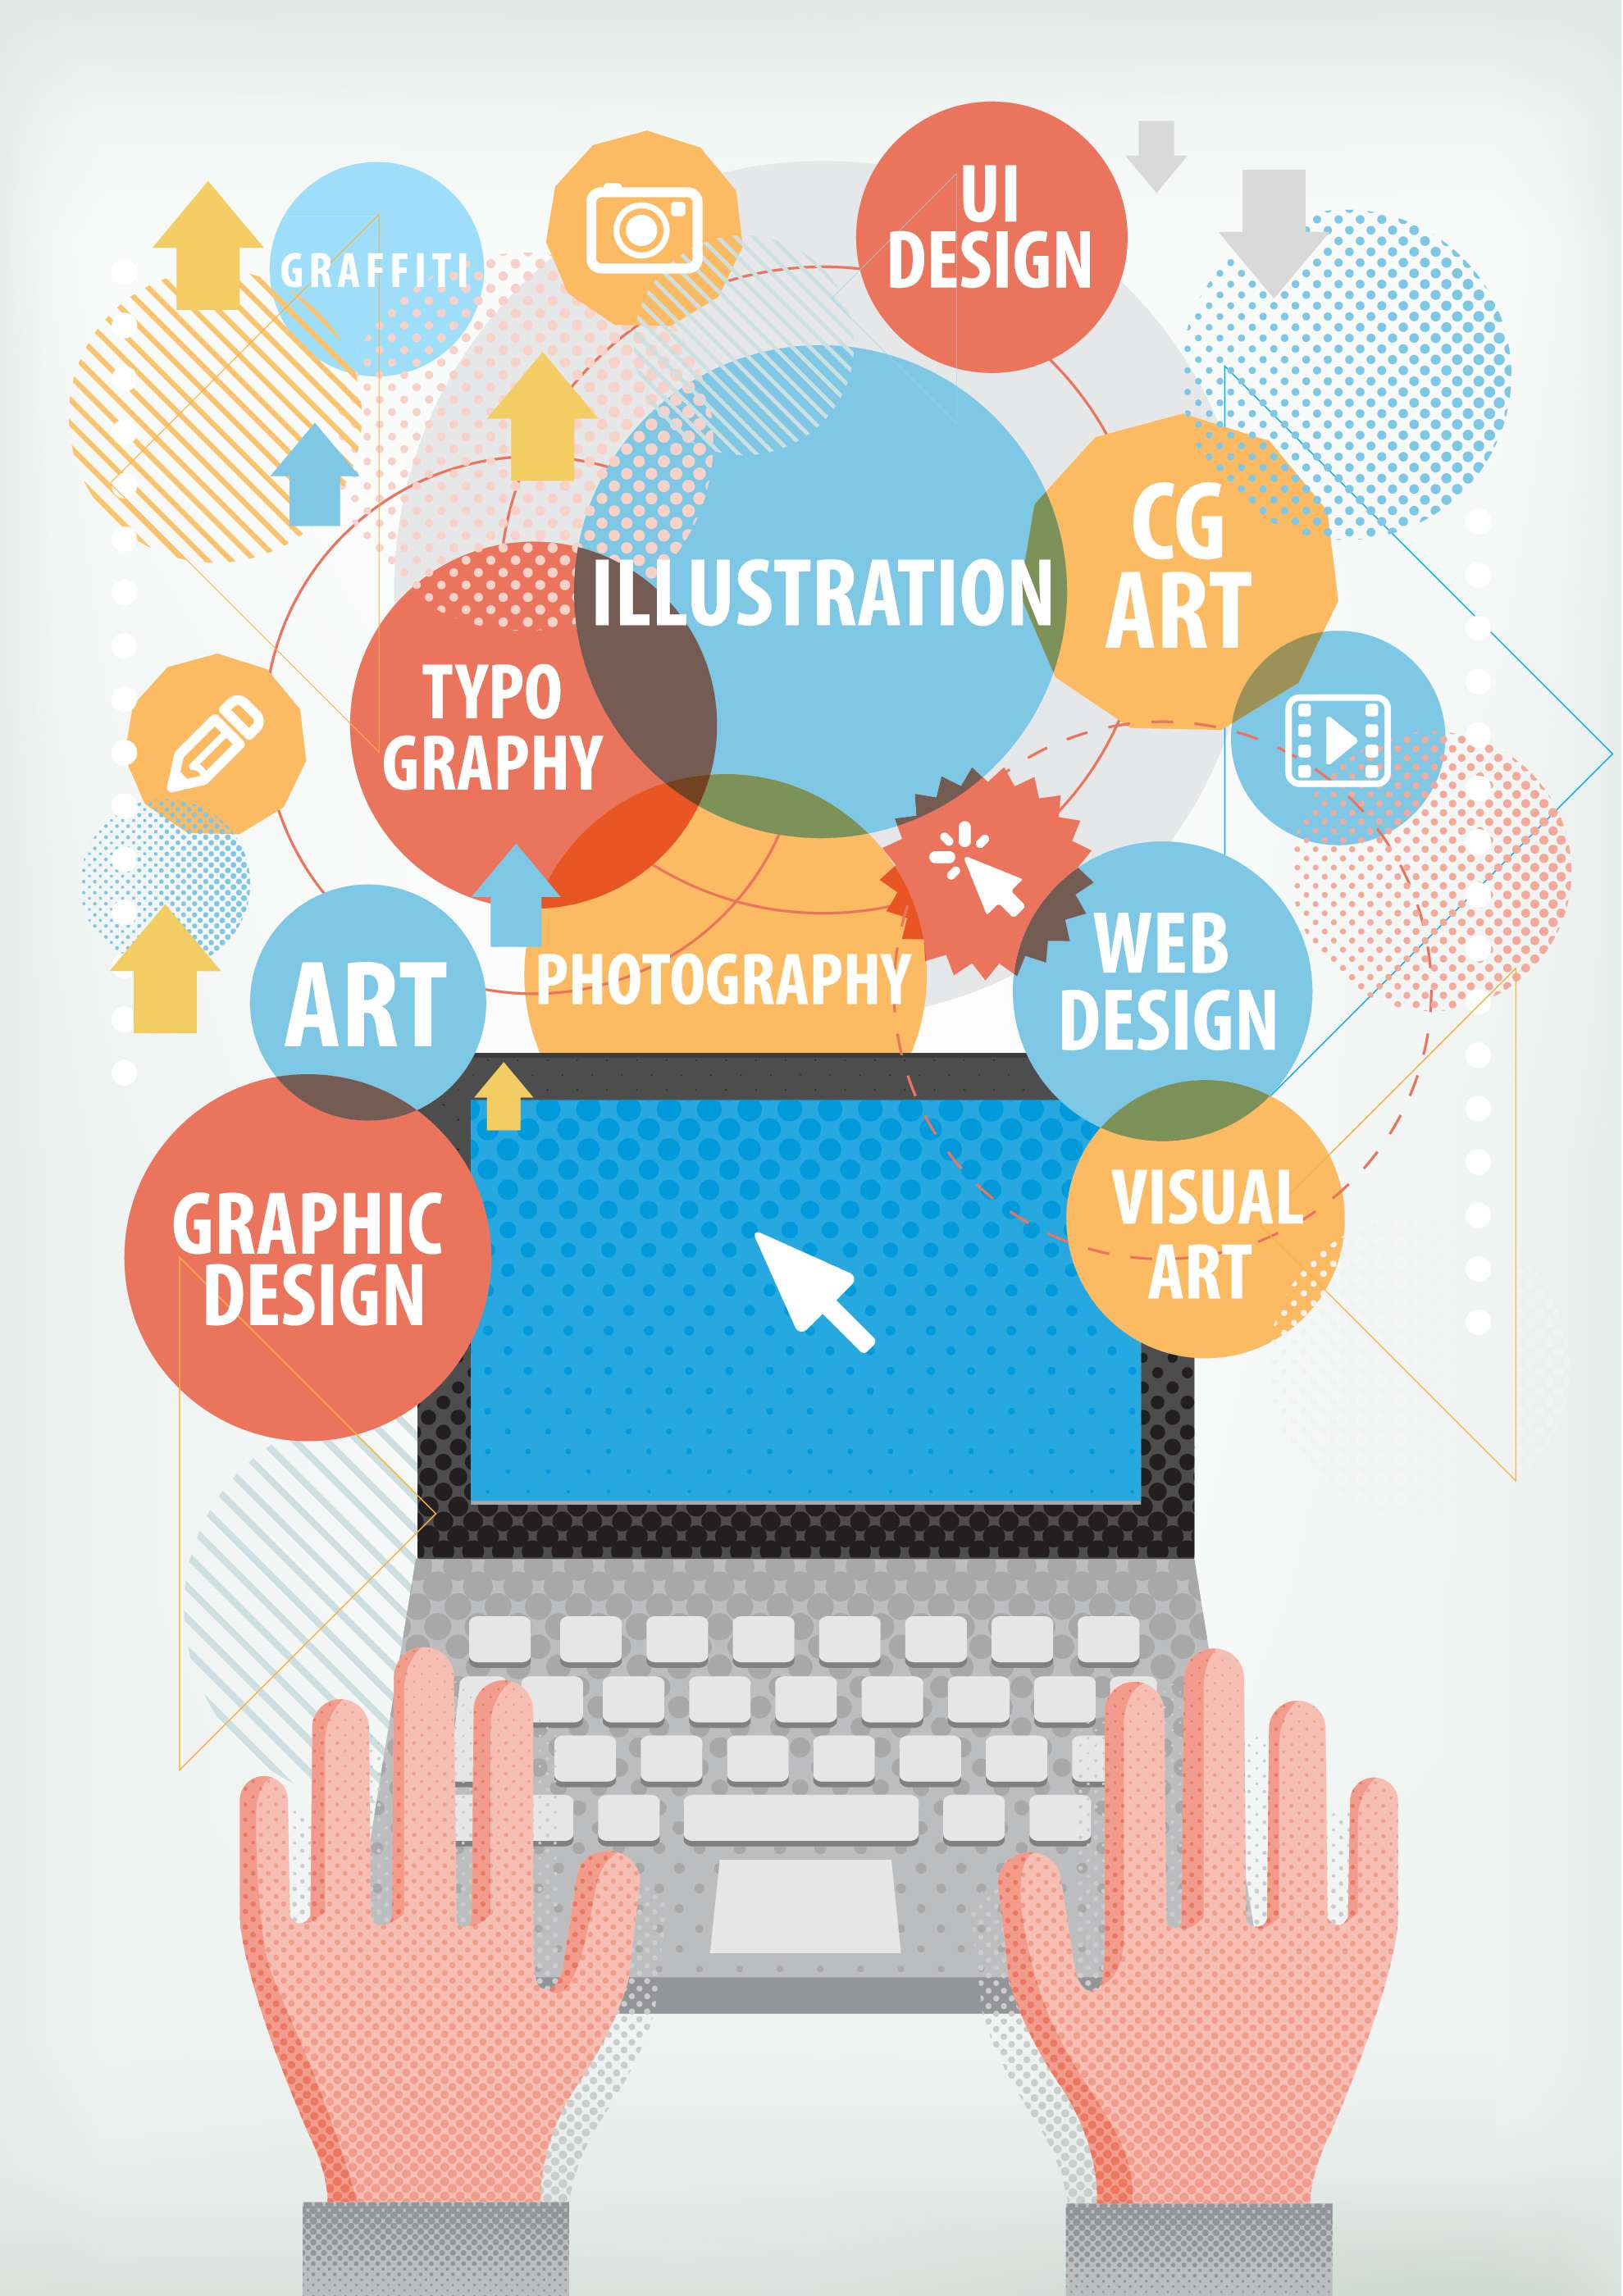 Awe Inspiring Unleash Your Creativity As A Graphic Designer Careerbuilder Download Free Architecture Designs Scobabritishbridgeorg